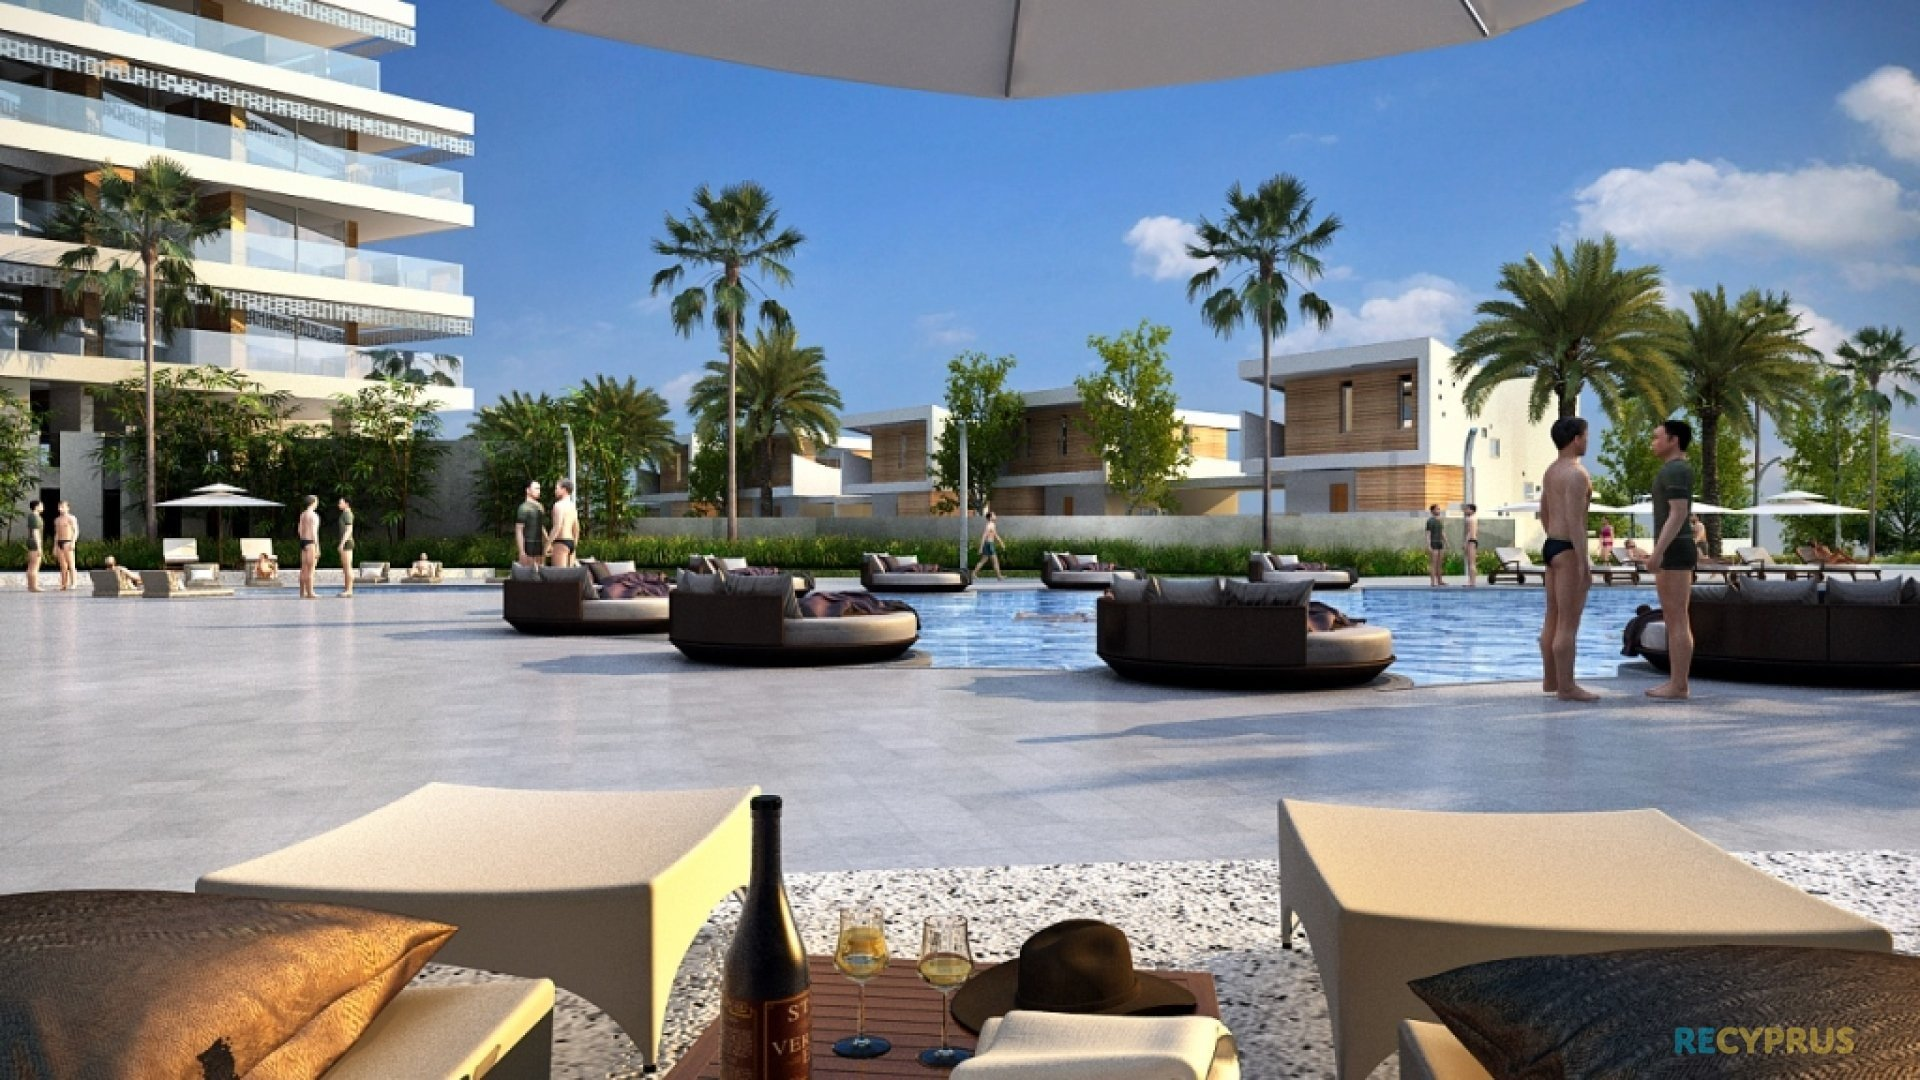 Apartment for sale Ayia Thekla Famagusta Cyprus 12 3450